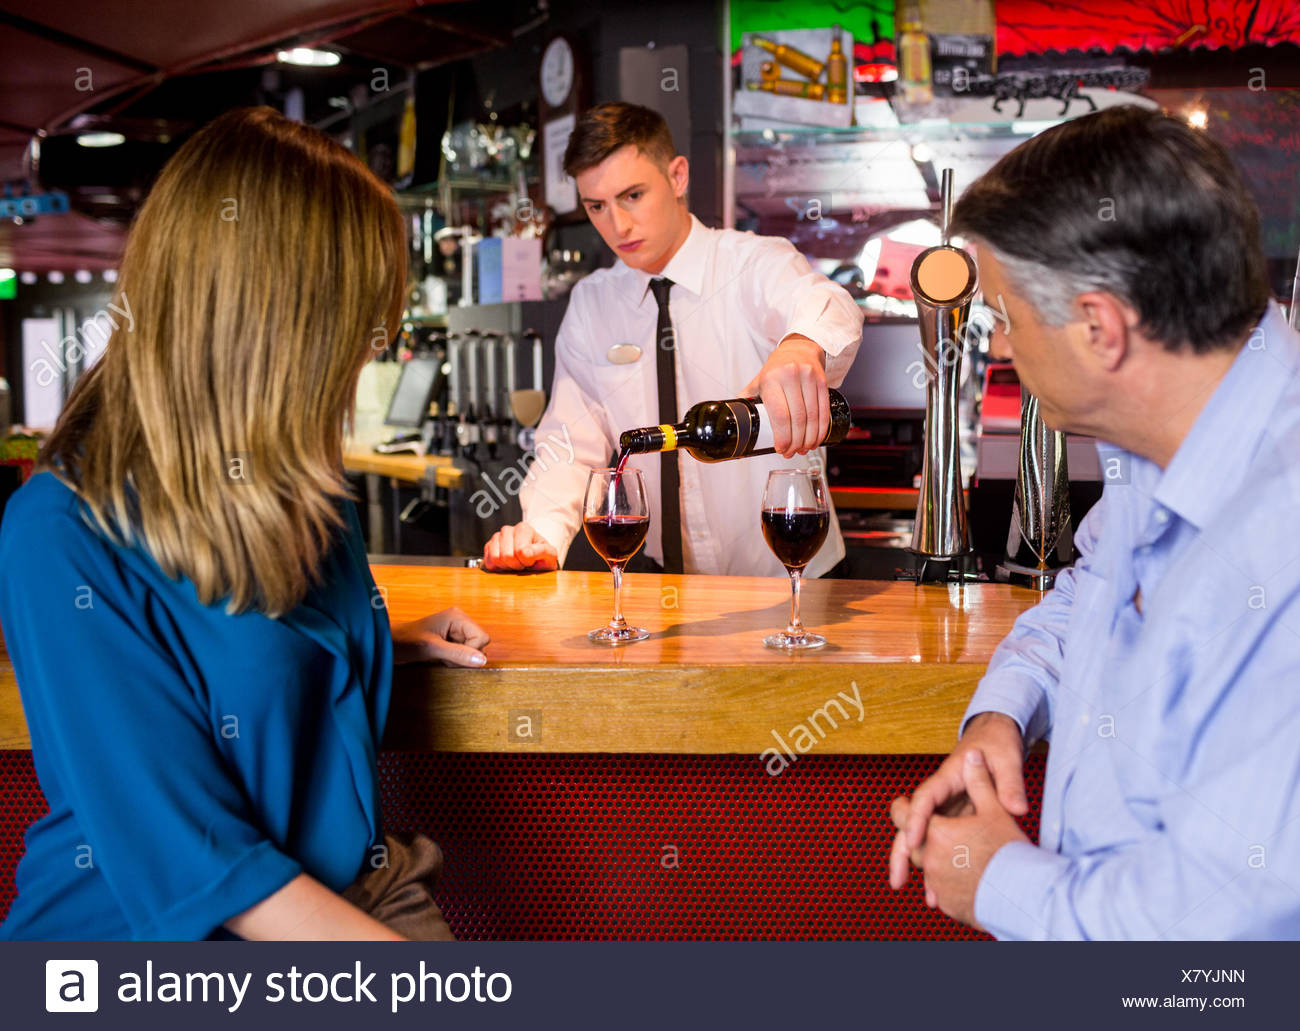 Bartender offering glasses of wine to couple - Stock Image